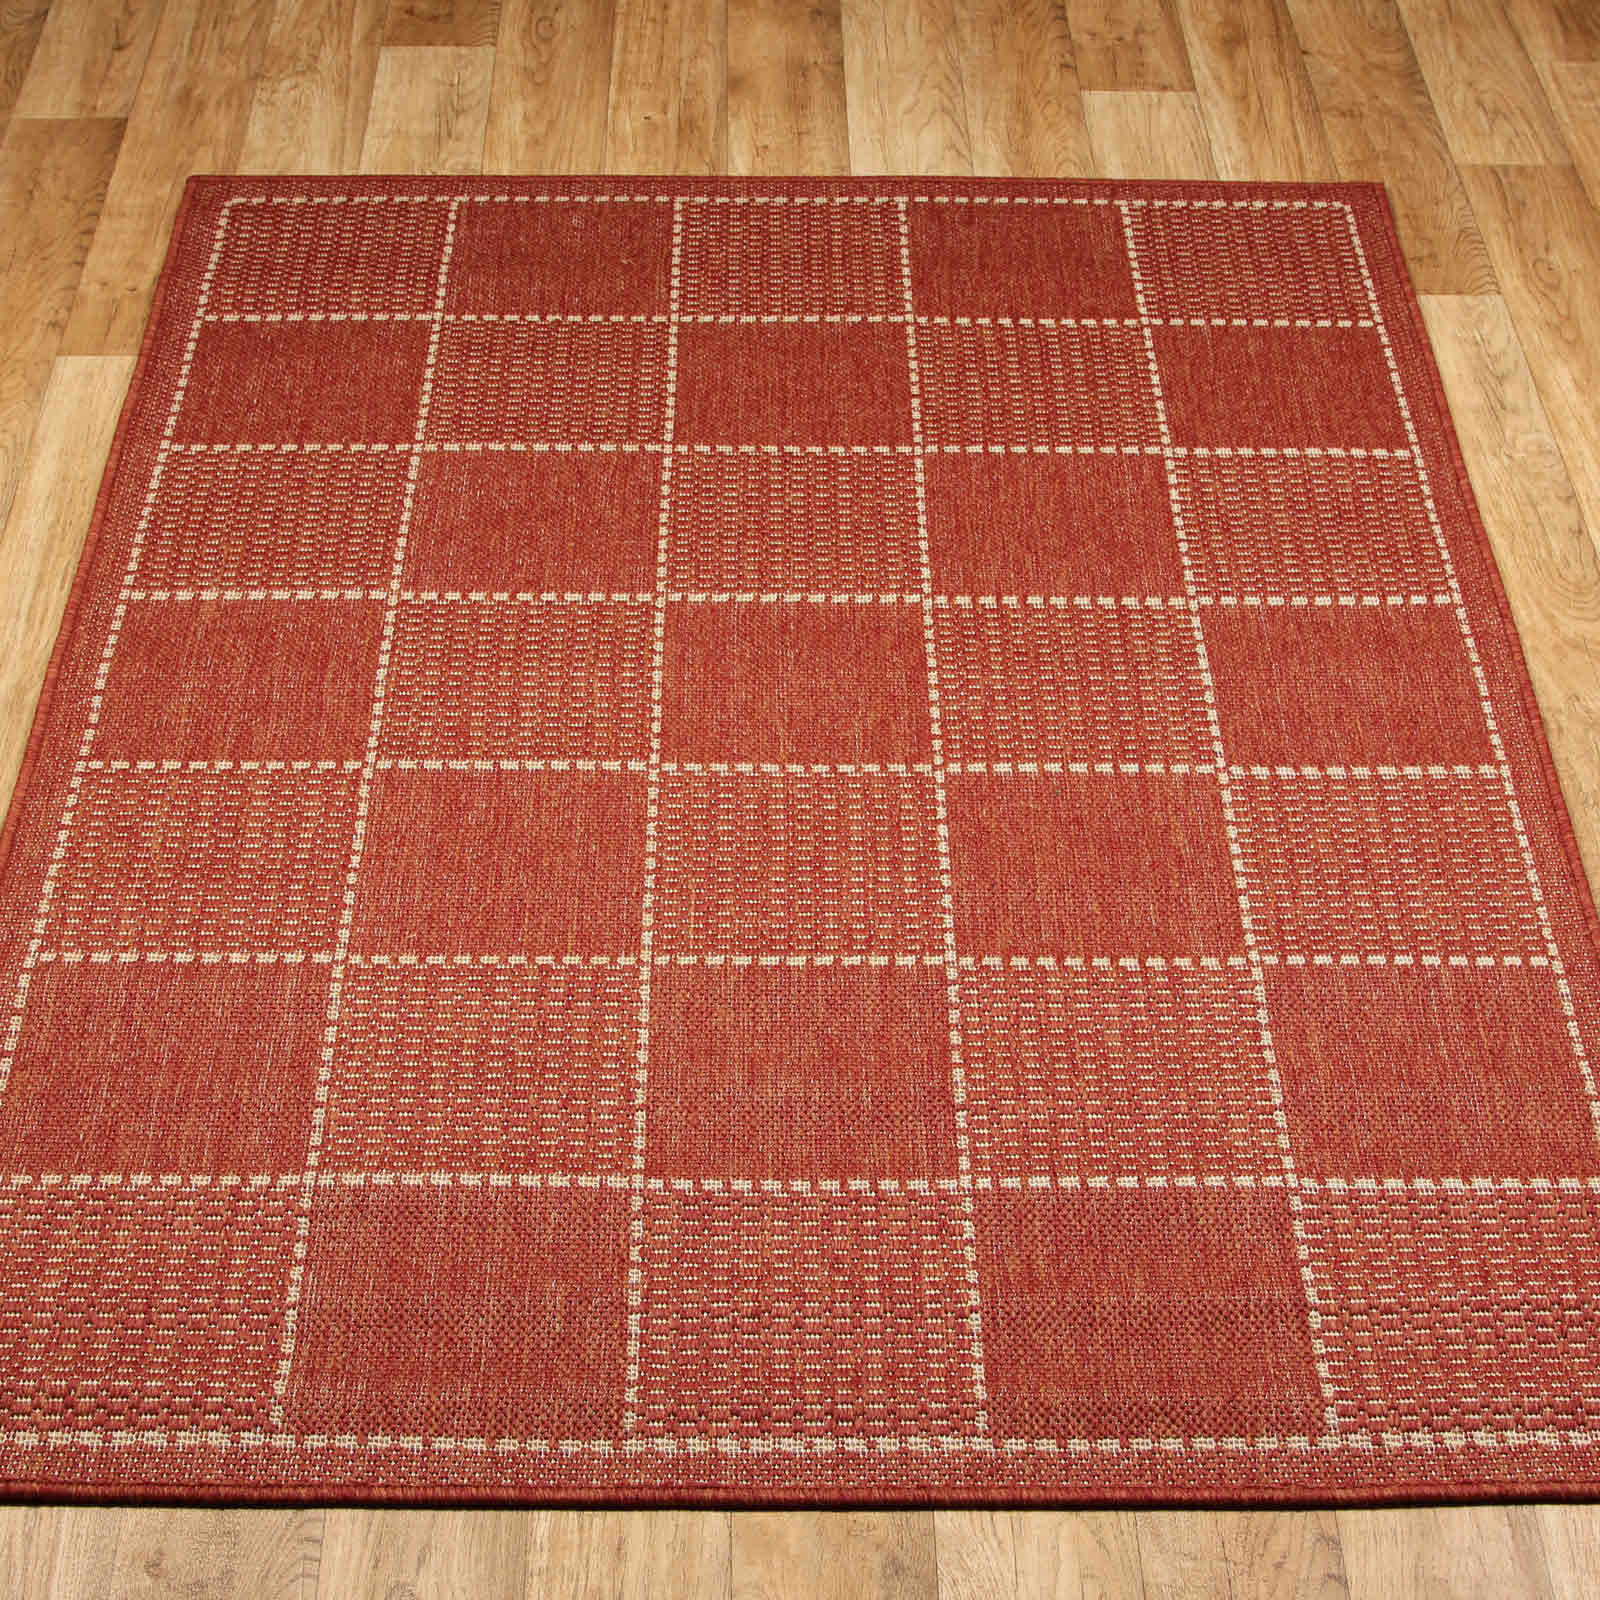 Kitchen Floor Mats Uk Super Sisalo Anti Slip Kitchen Rugs In Terracotta Free Uk